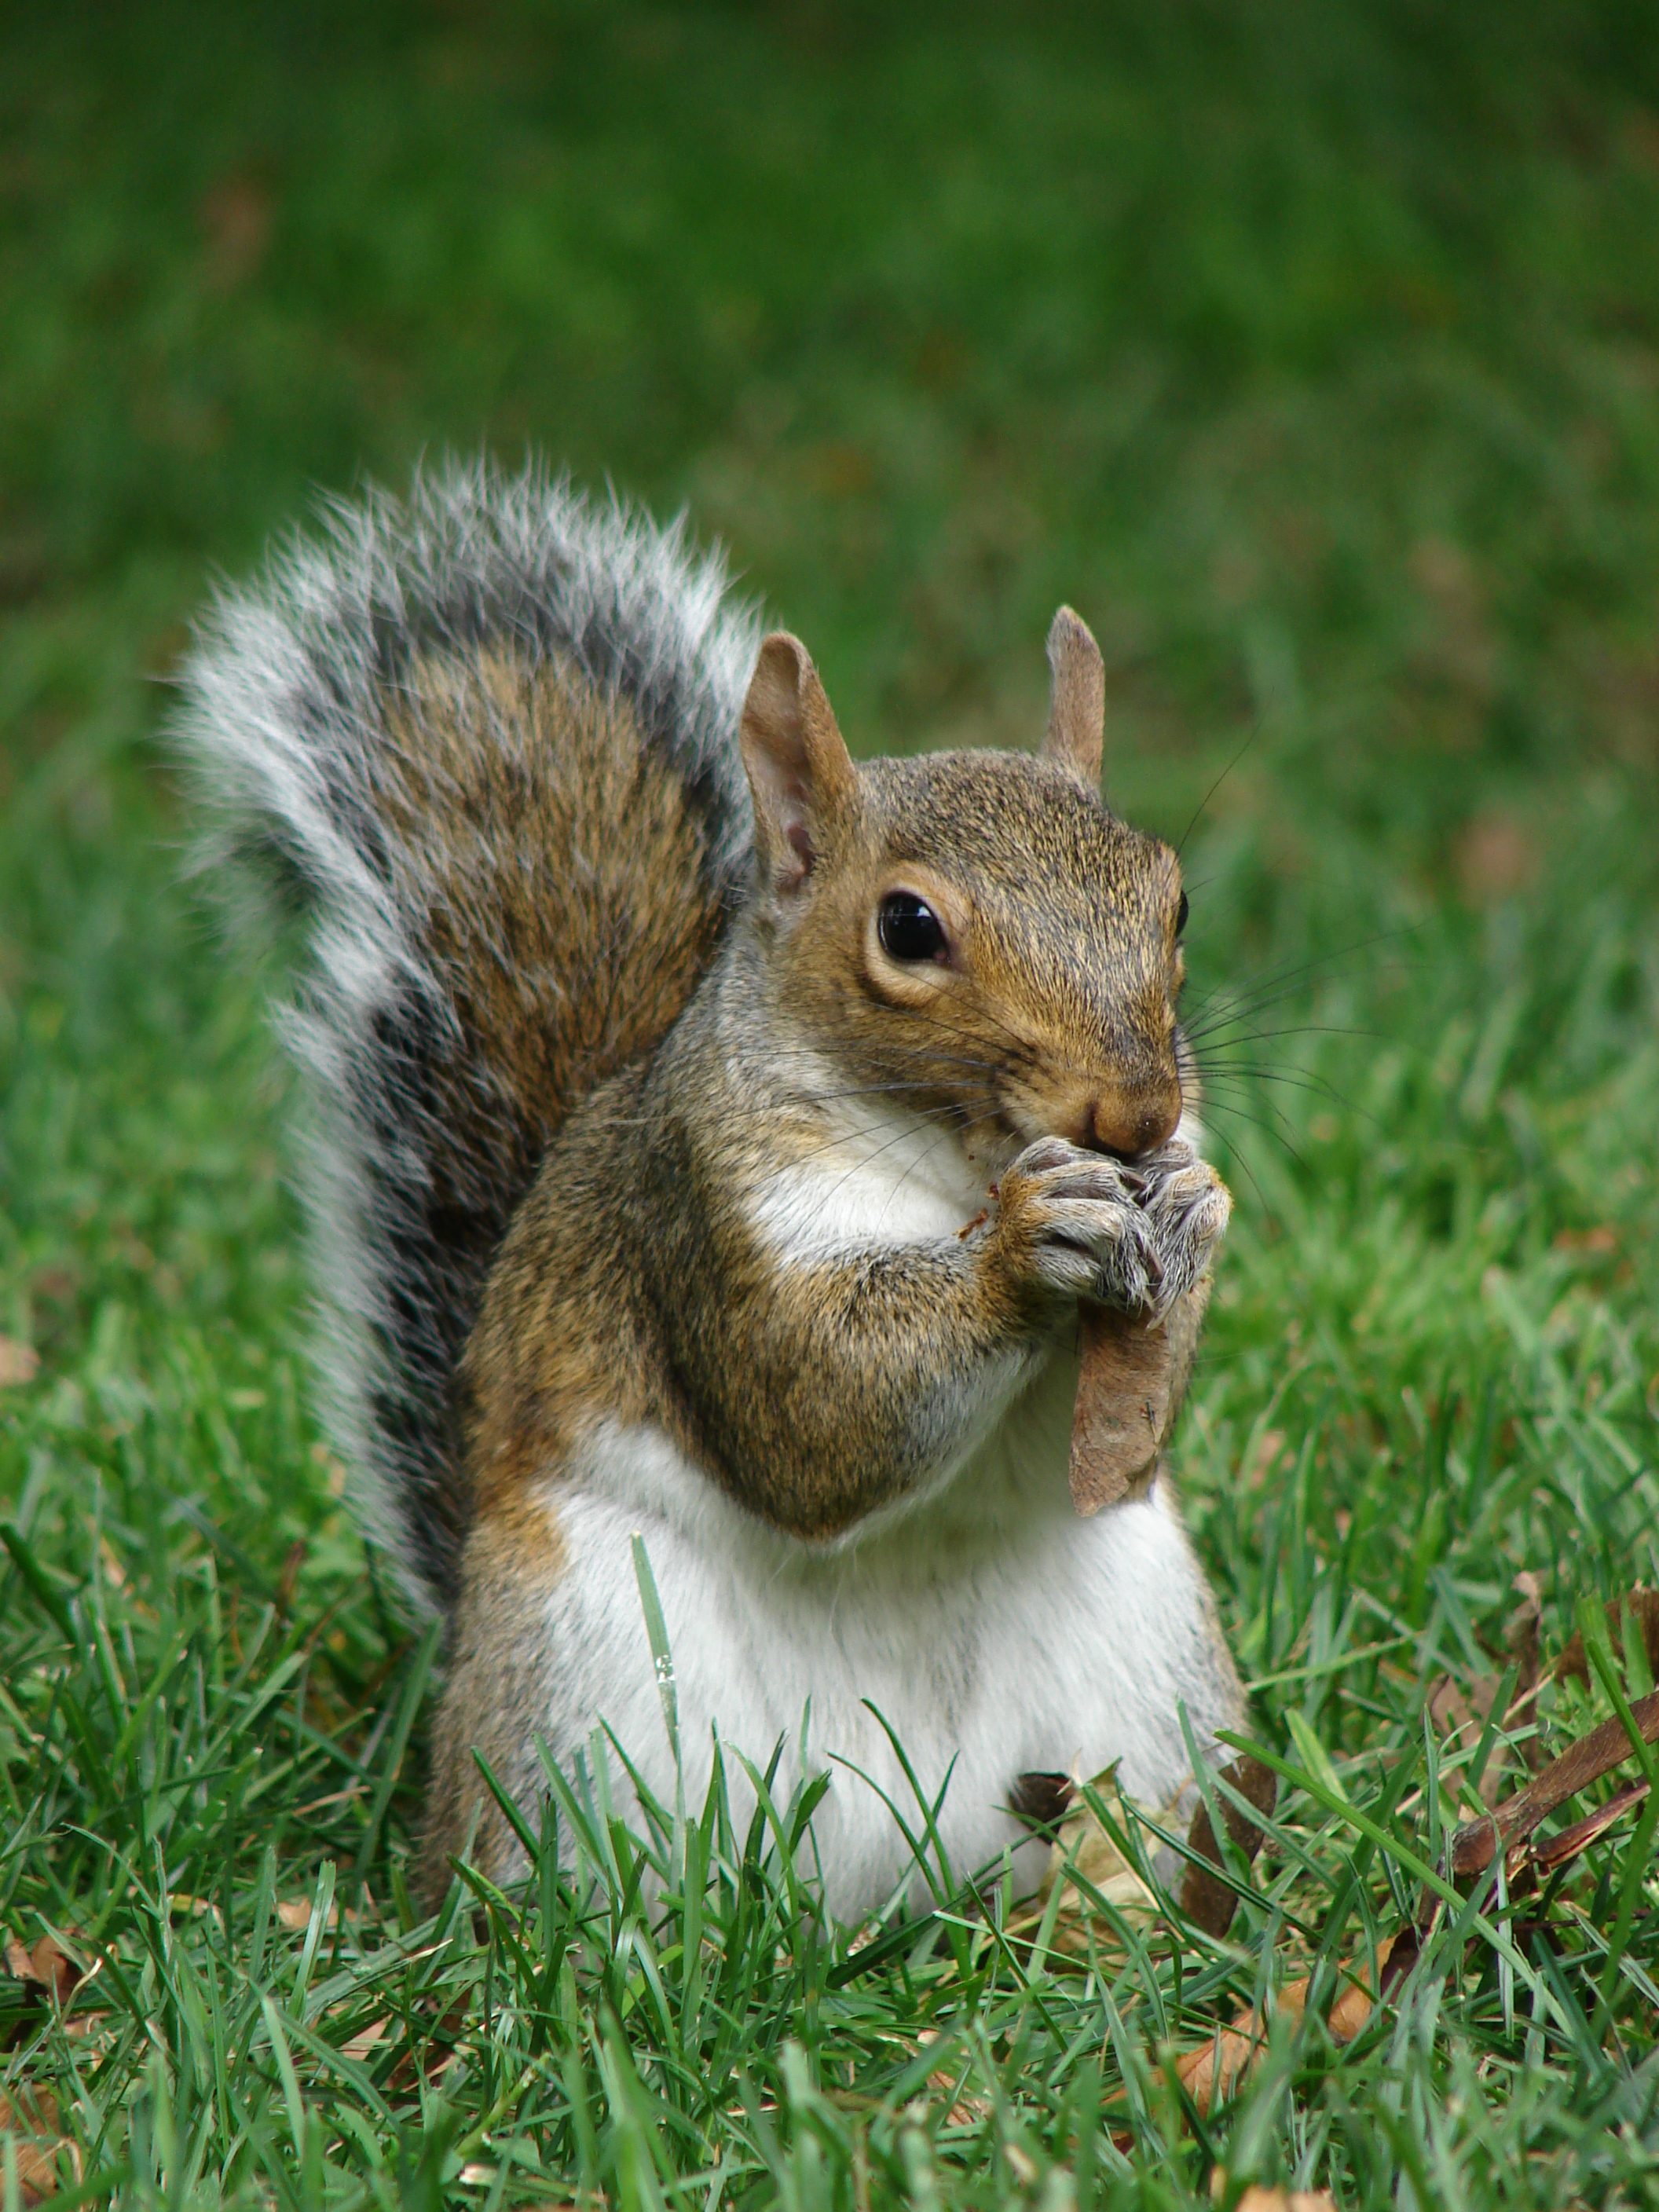 squirrel proof bird feeders can offer a measure of prevention against damaging by rodents and various unwanted birds imposing on your back yard - Squirrel Proof Bird Feeders